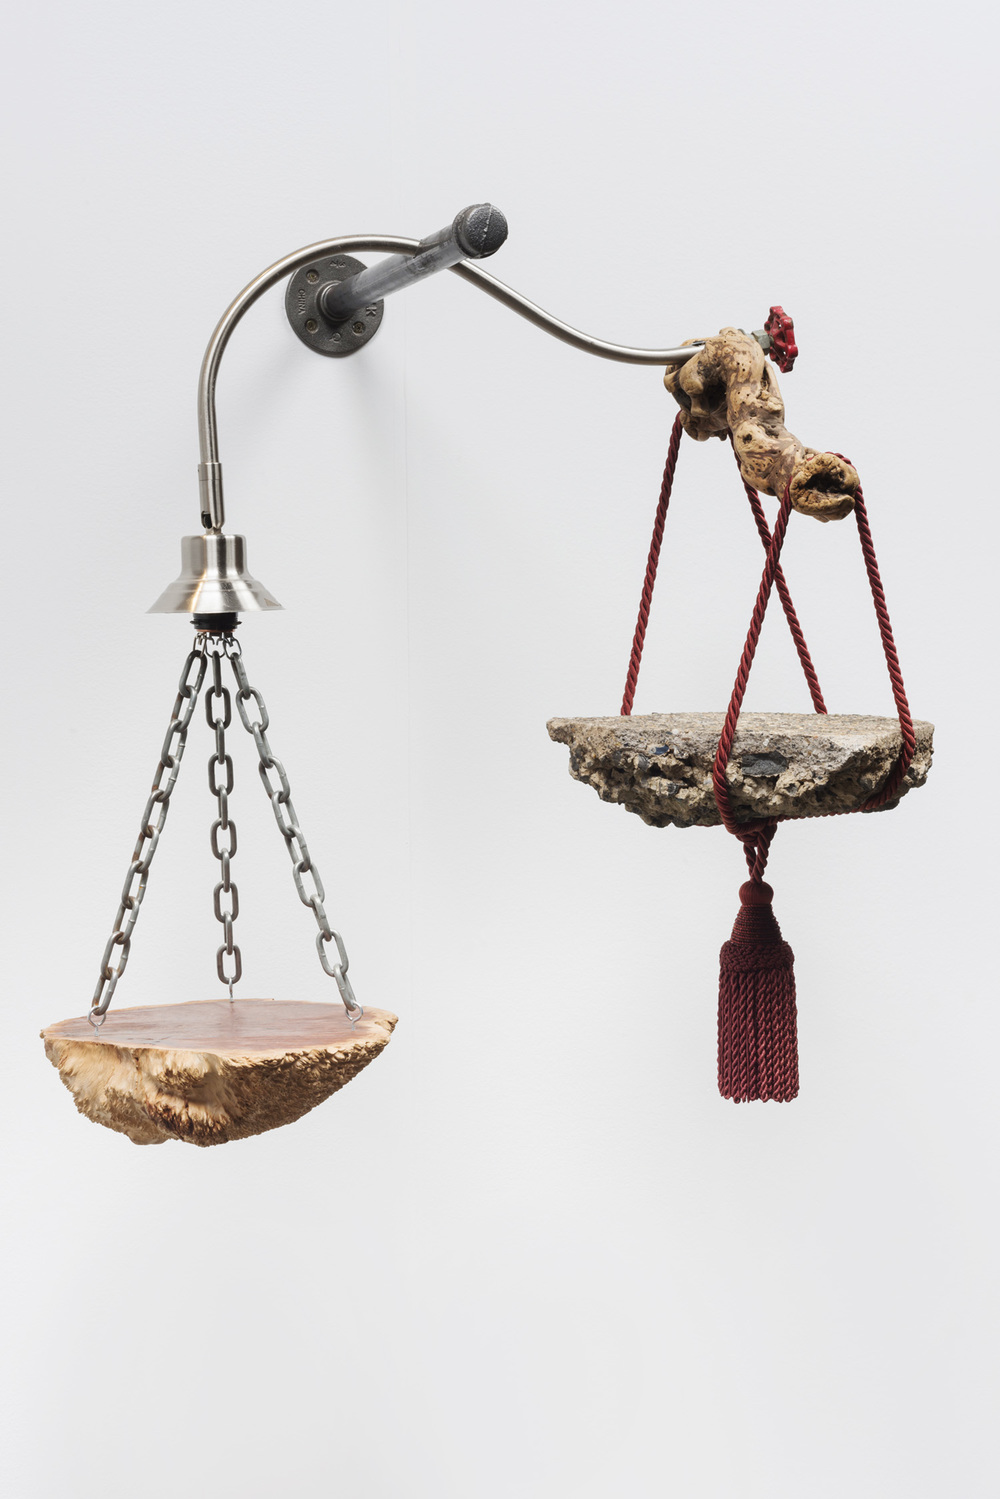 Lorna Williams-crux-2013-Australian burl, chain, curtain tassel with beads, drift wood, plumbing hardware, concrete, light fixture-30x27x20.jpg